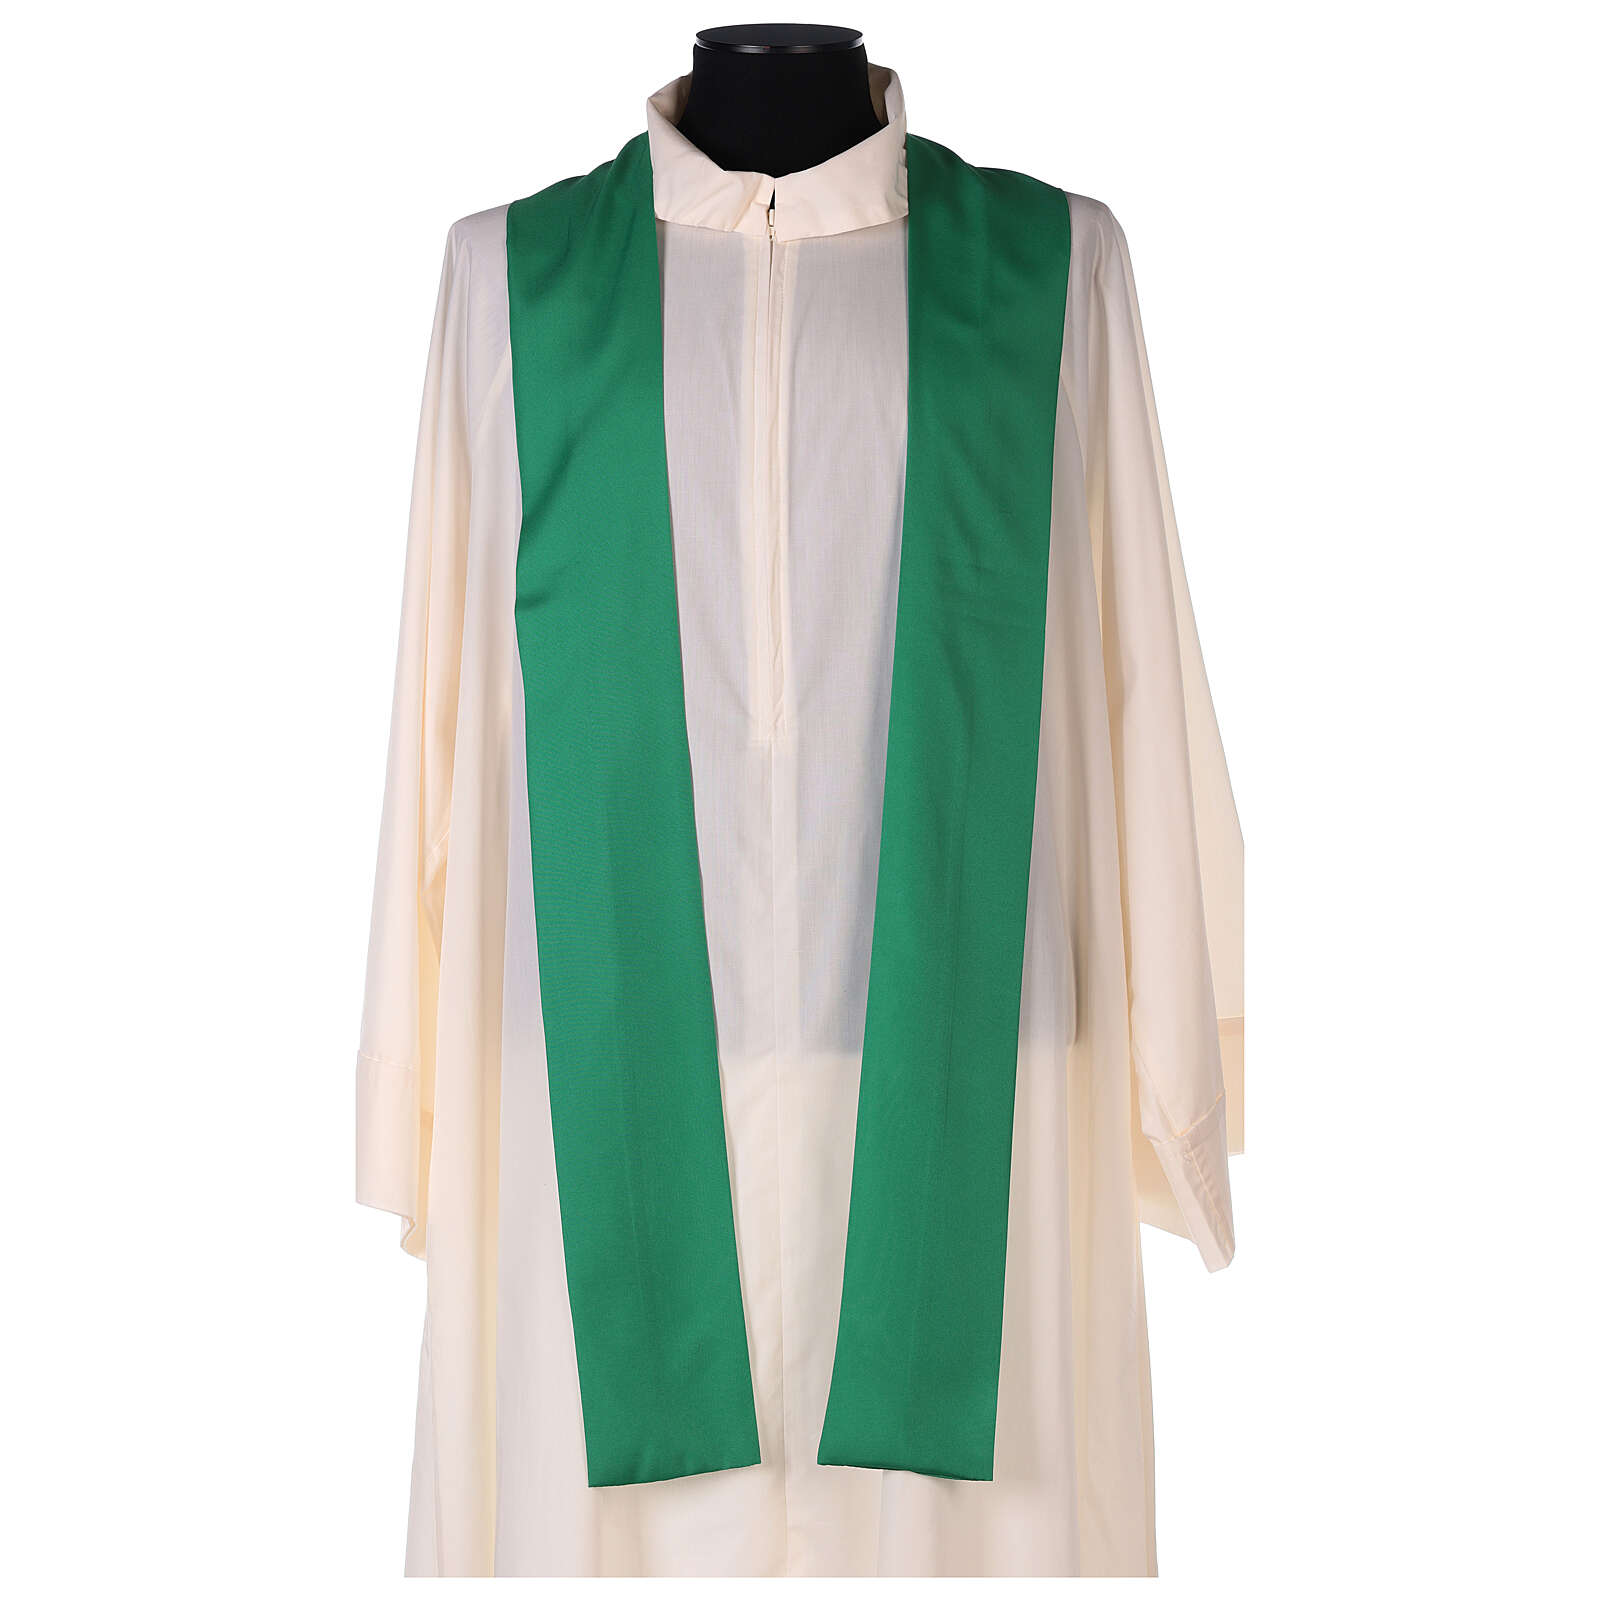 Set of 4 Chasubles 4 colors, IHS cross rays SPECIAL PRICE 4